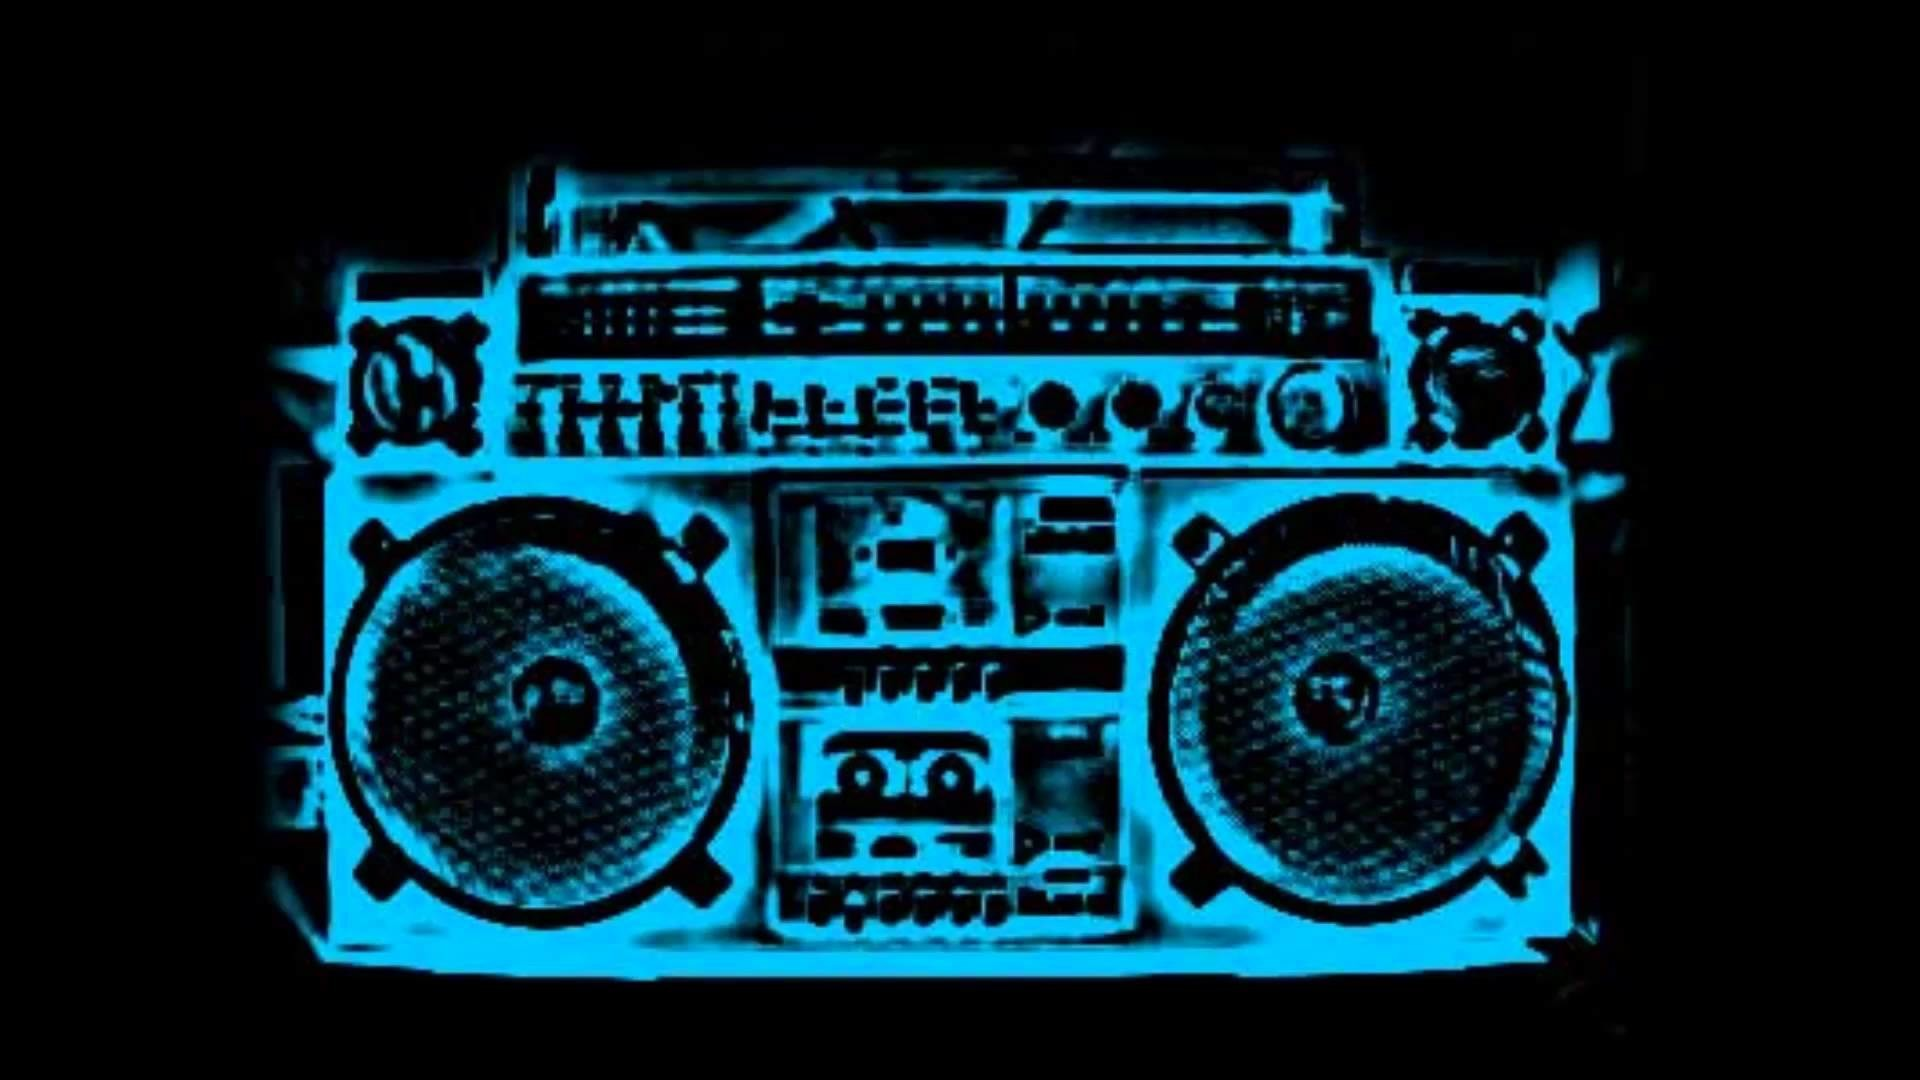 Res: 1920x1080, Rotating Boom Box Ghetto Blaster With Moving Cones On A Black .